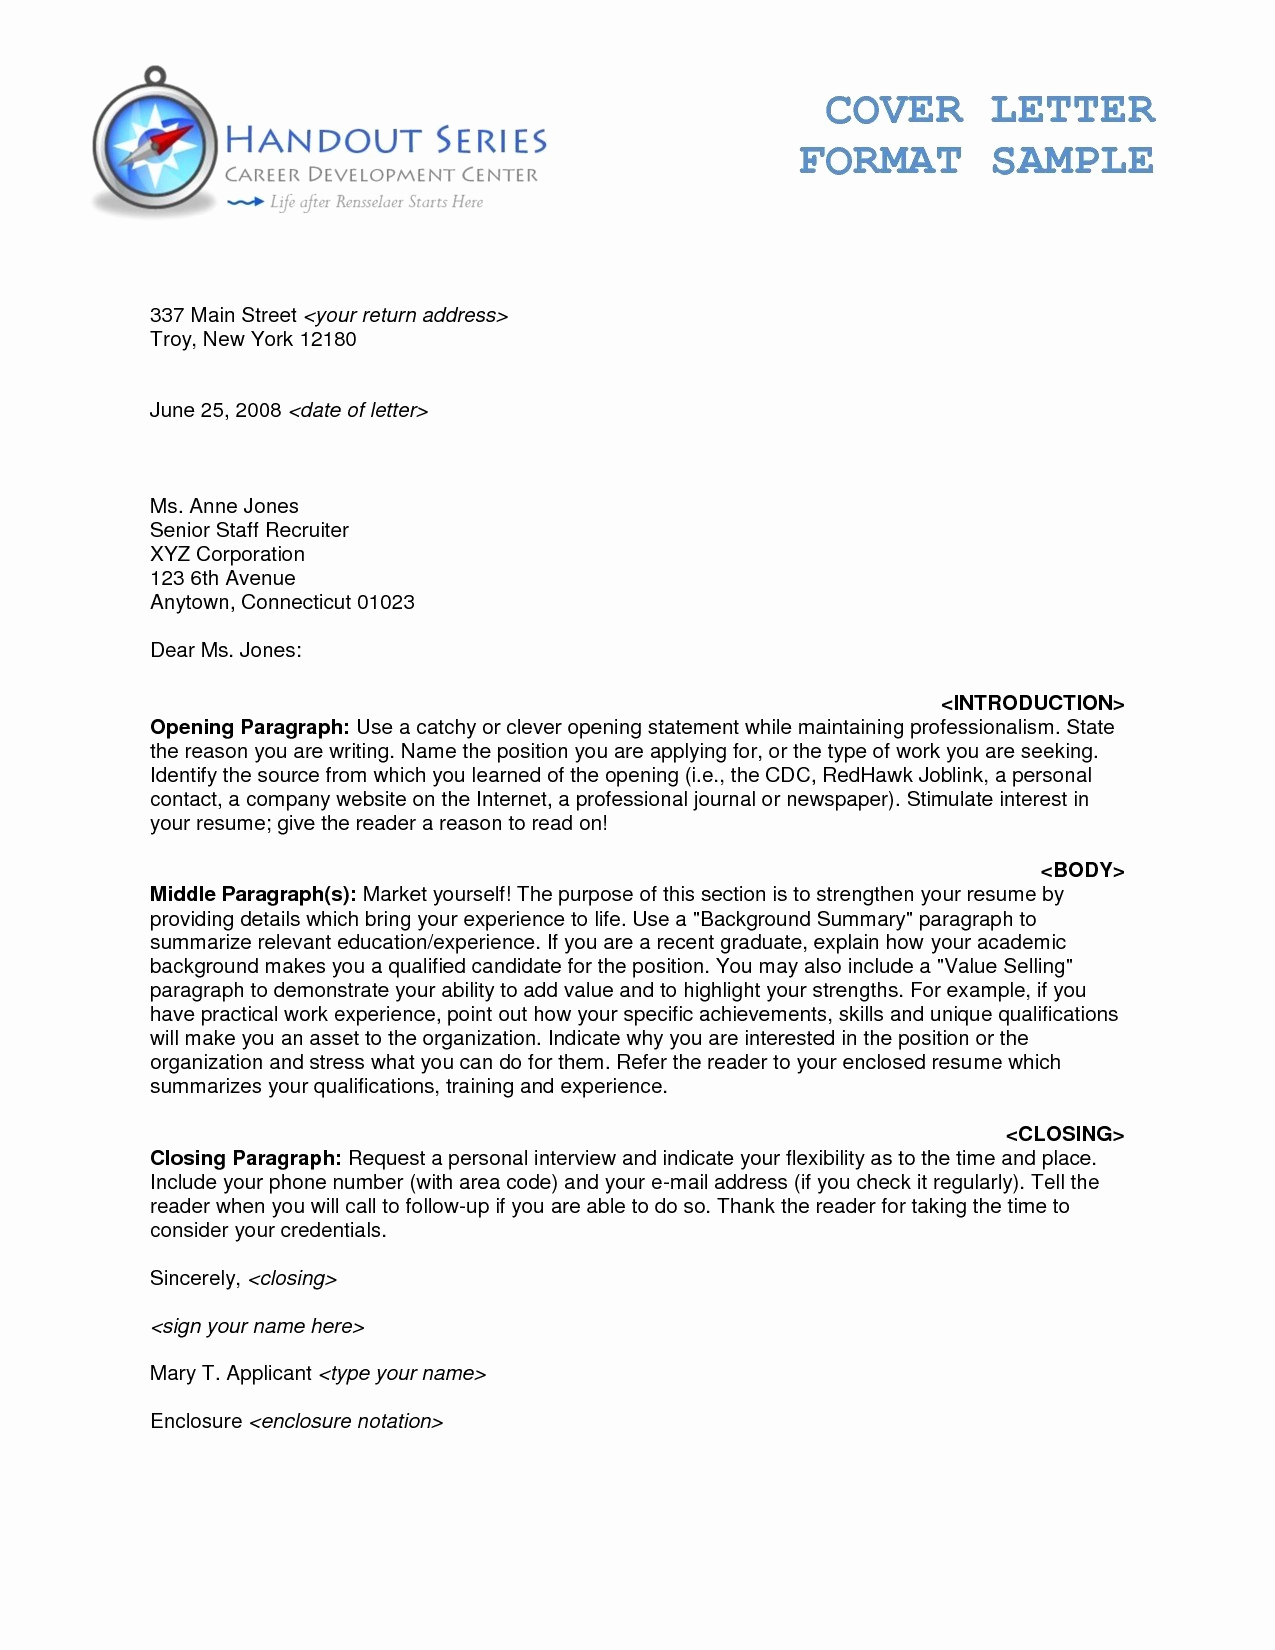 Demotion Letter Template - Voluntary Demotion Letter Template New Business Letter attachment